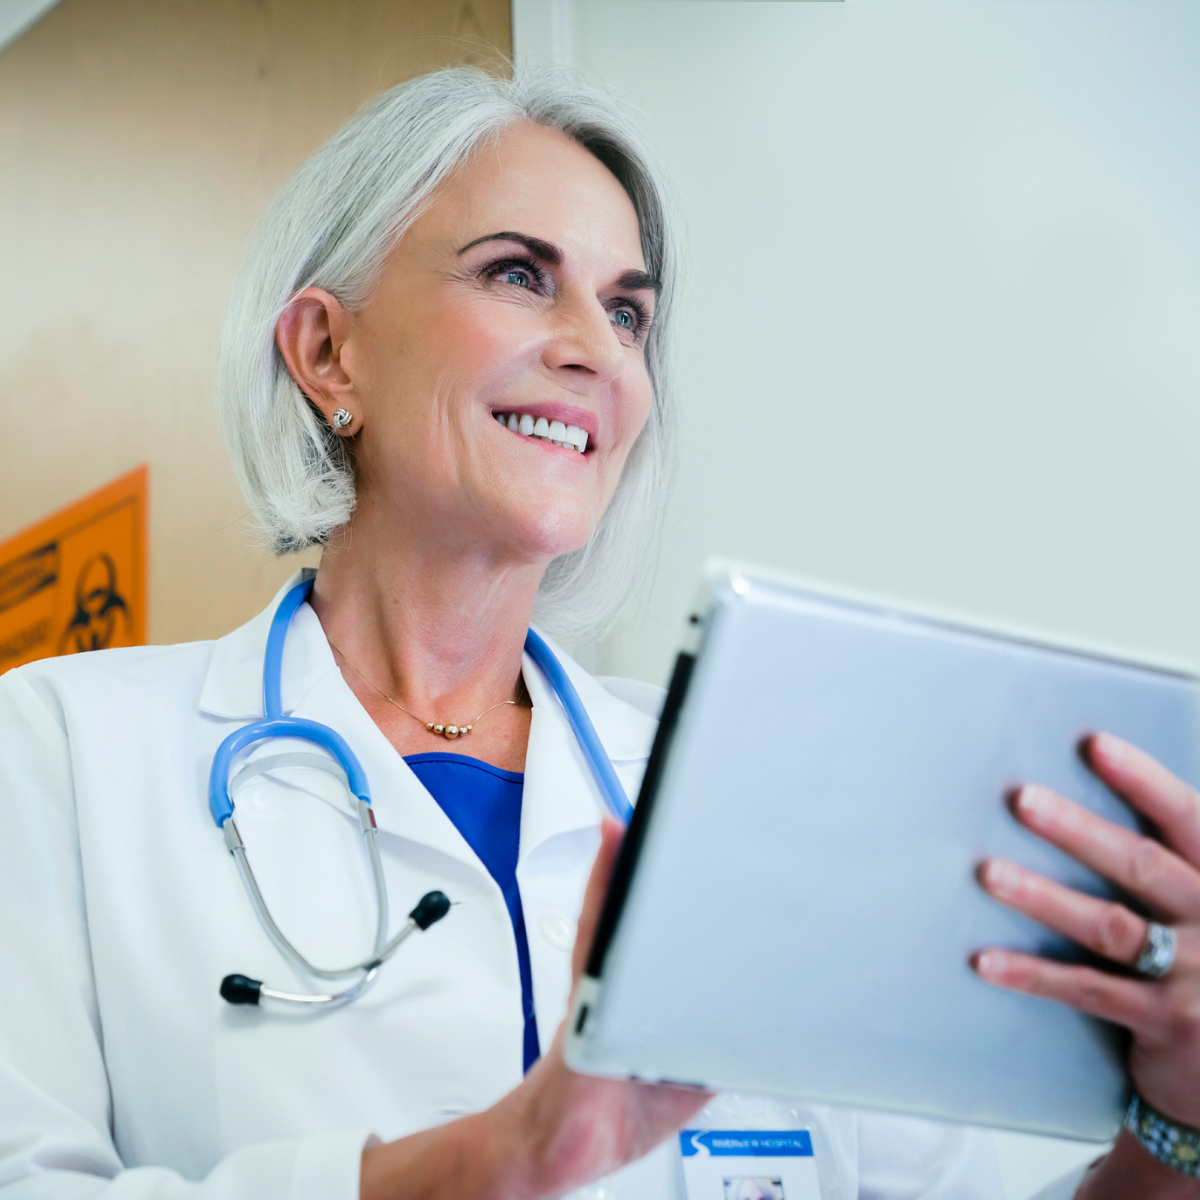 smiling female doctor looking at notes on a clipboard